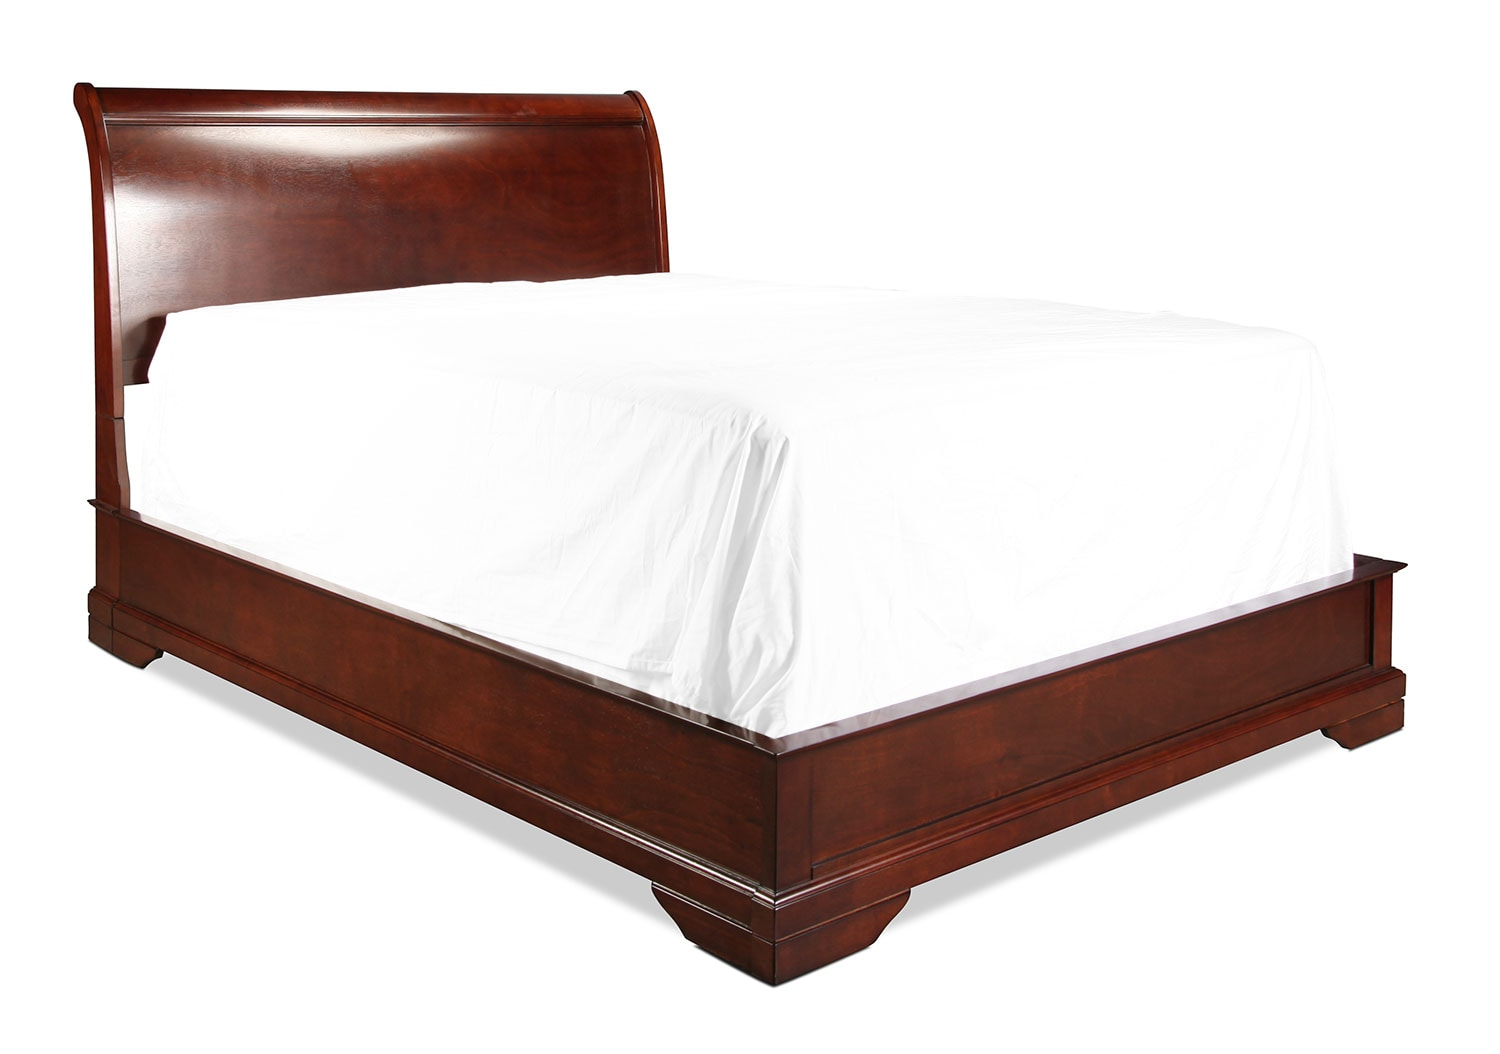 Bedroom Furniture - Claire King Bed - Brown Cherry